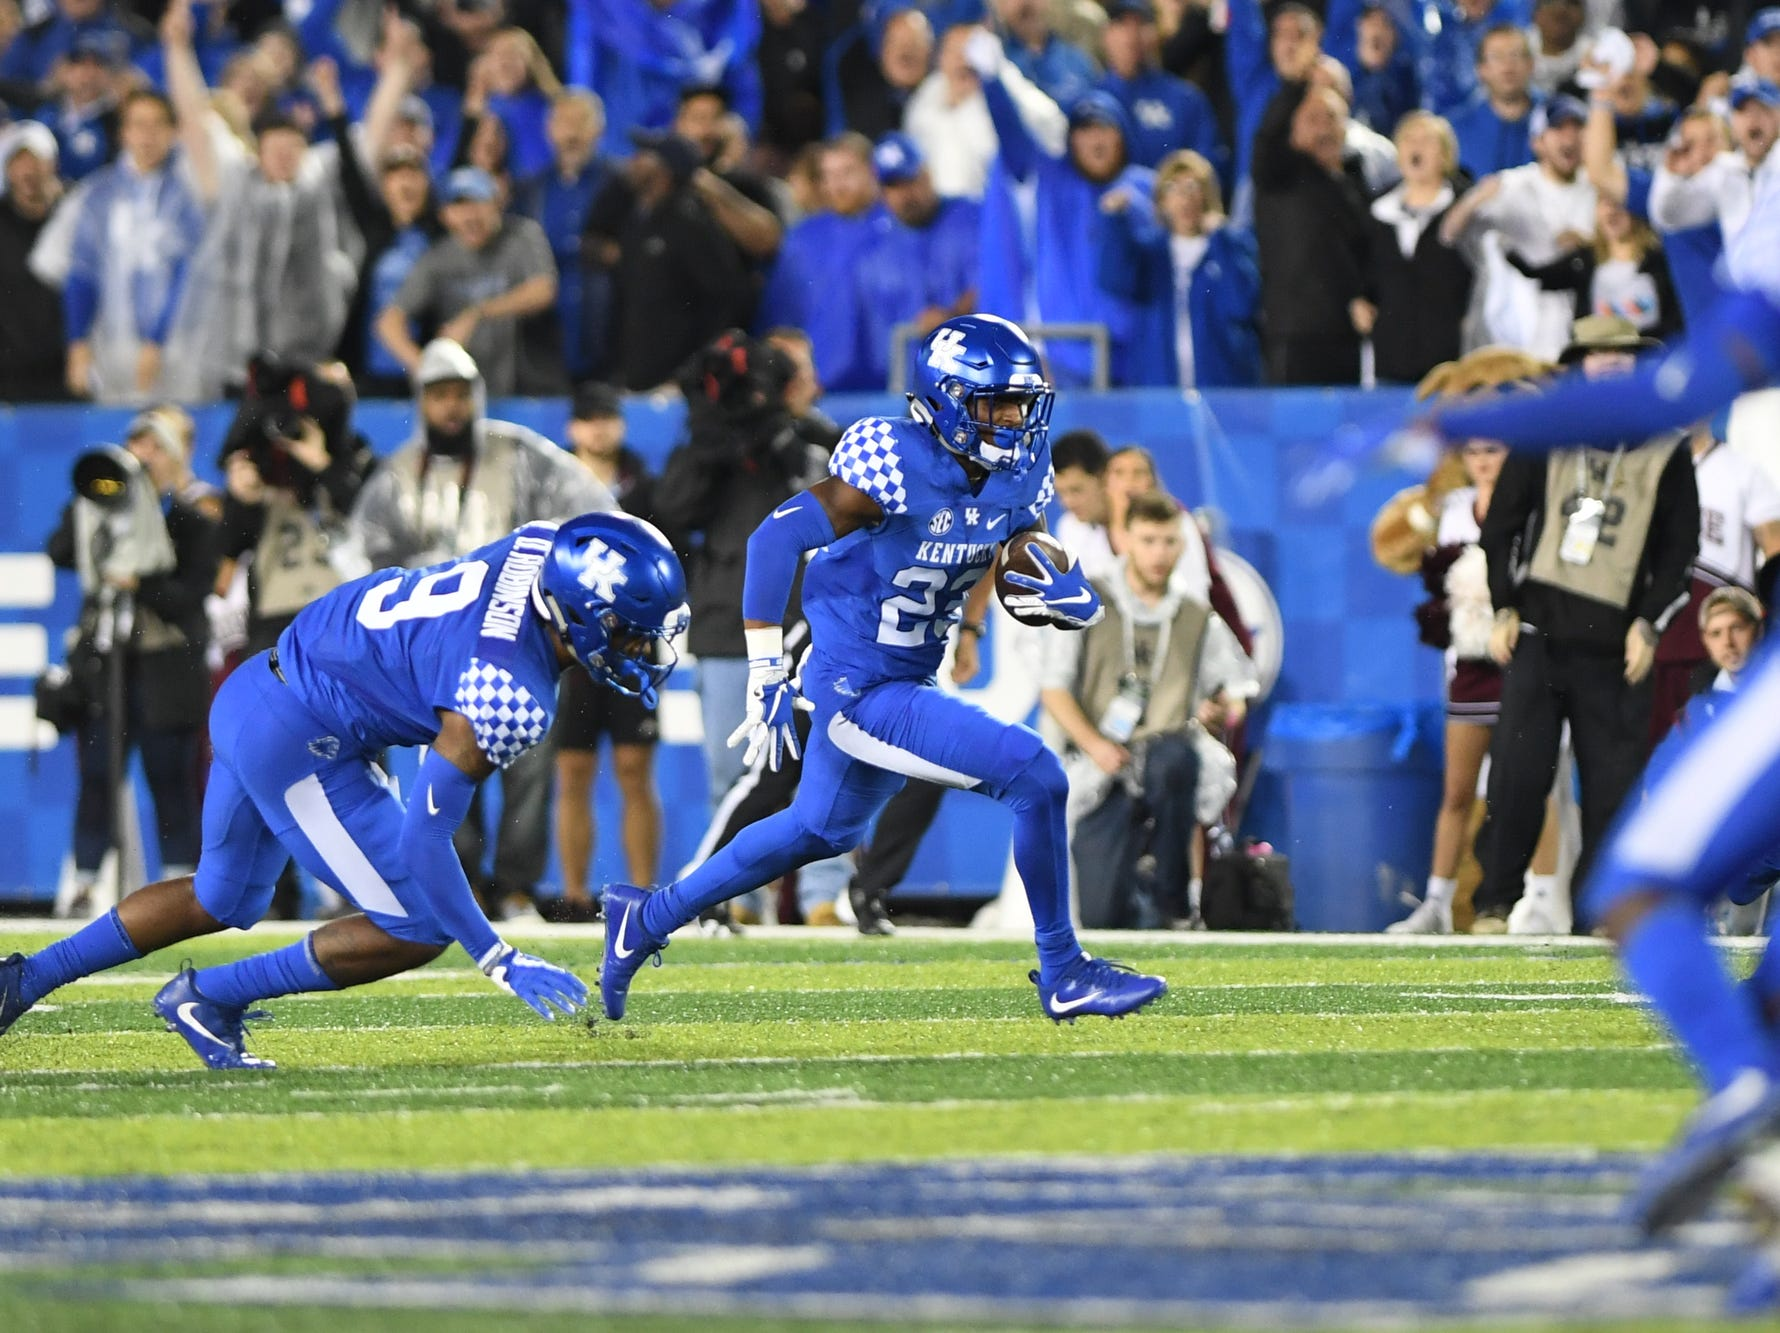 UK SS Tyrell Ajian intercepts the ball during the University of Kentucky football game against Mississippi State at Kroger Field in Lexington, Kentucky on Saturday, September 22, 2018.